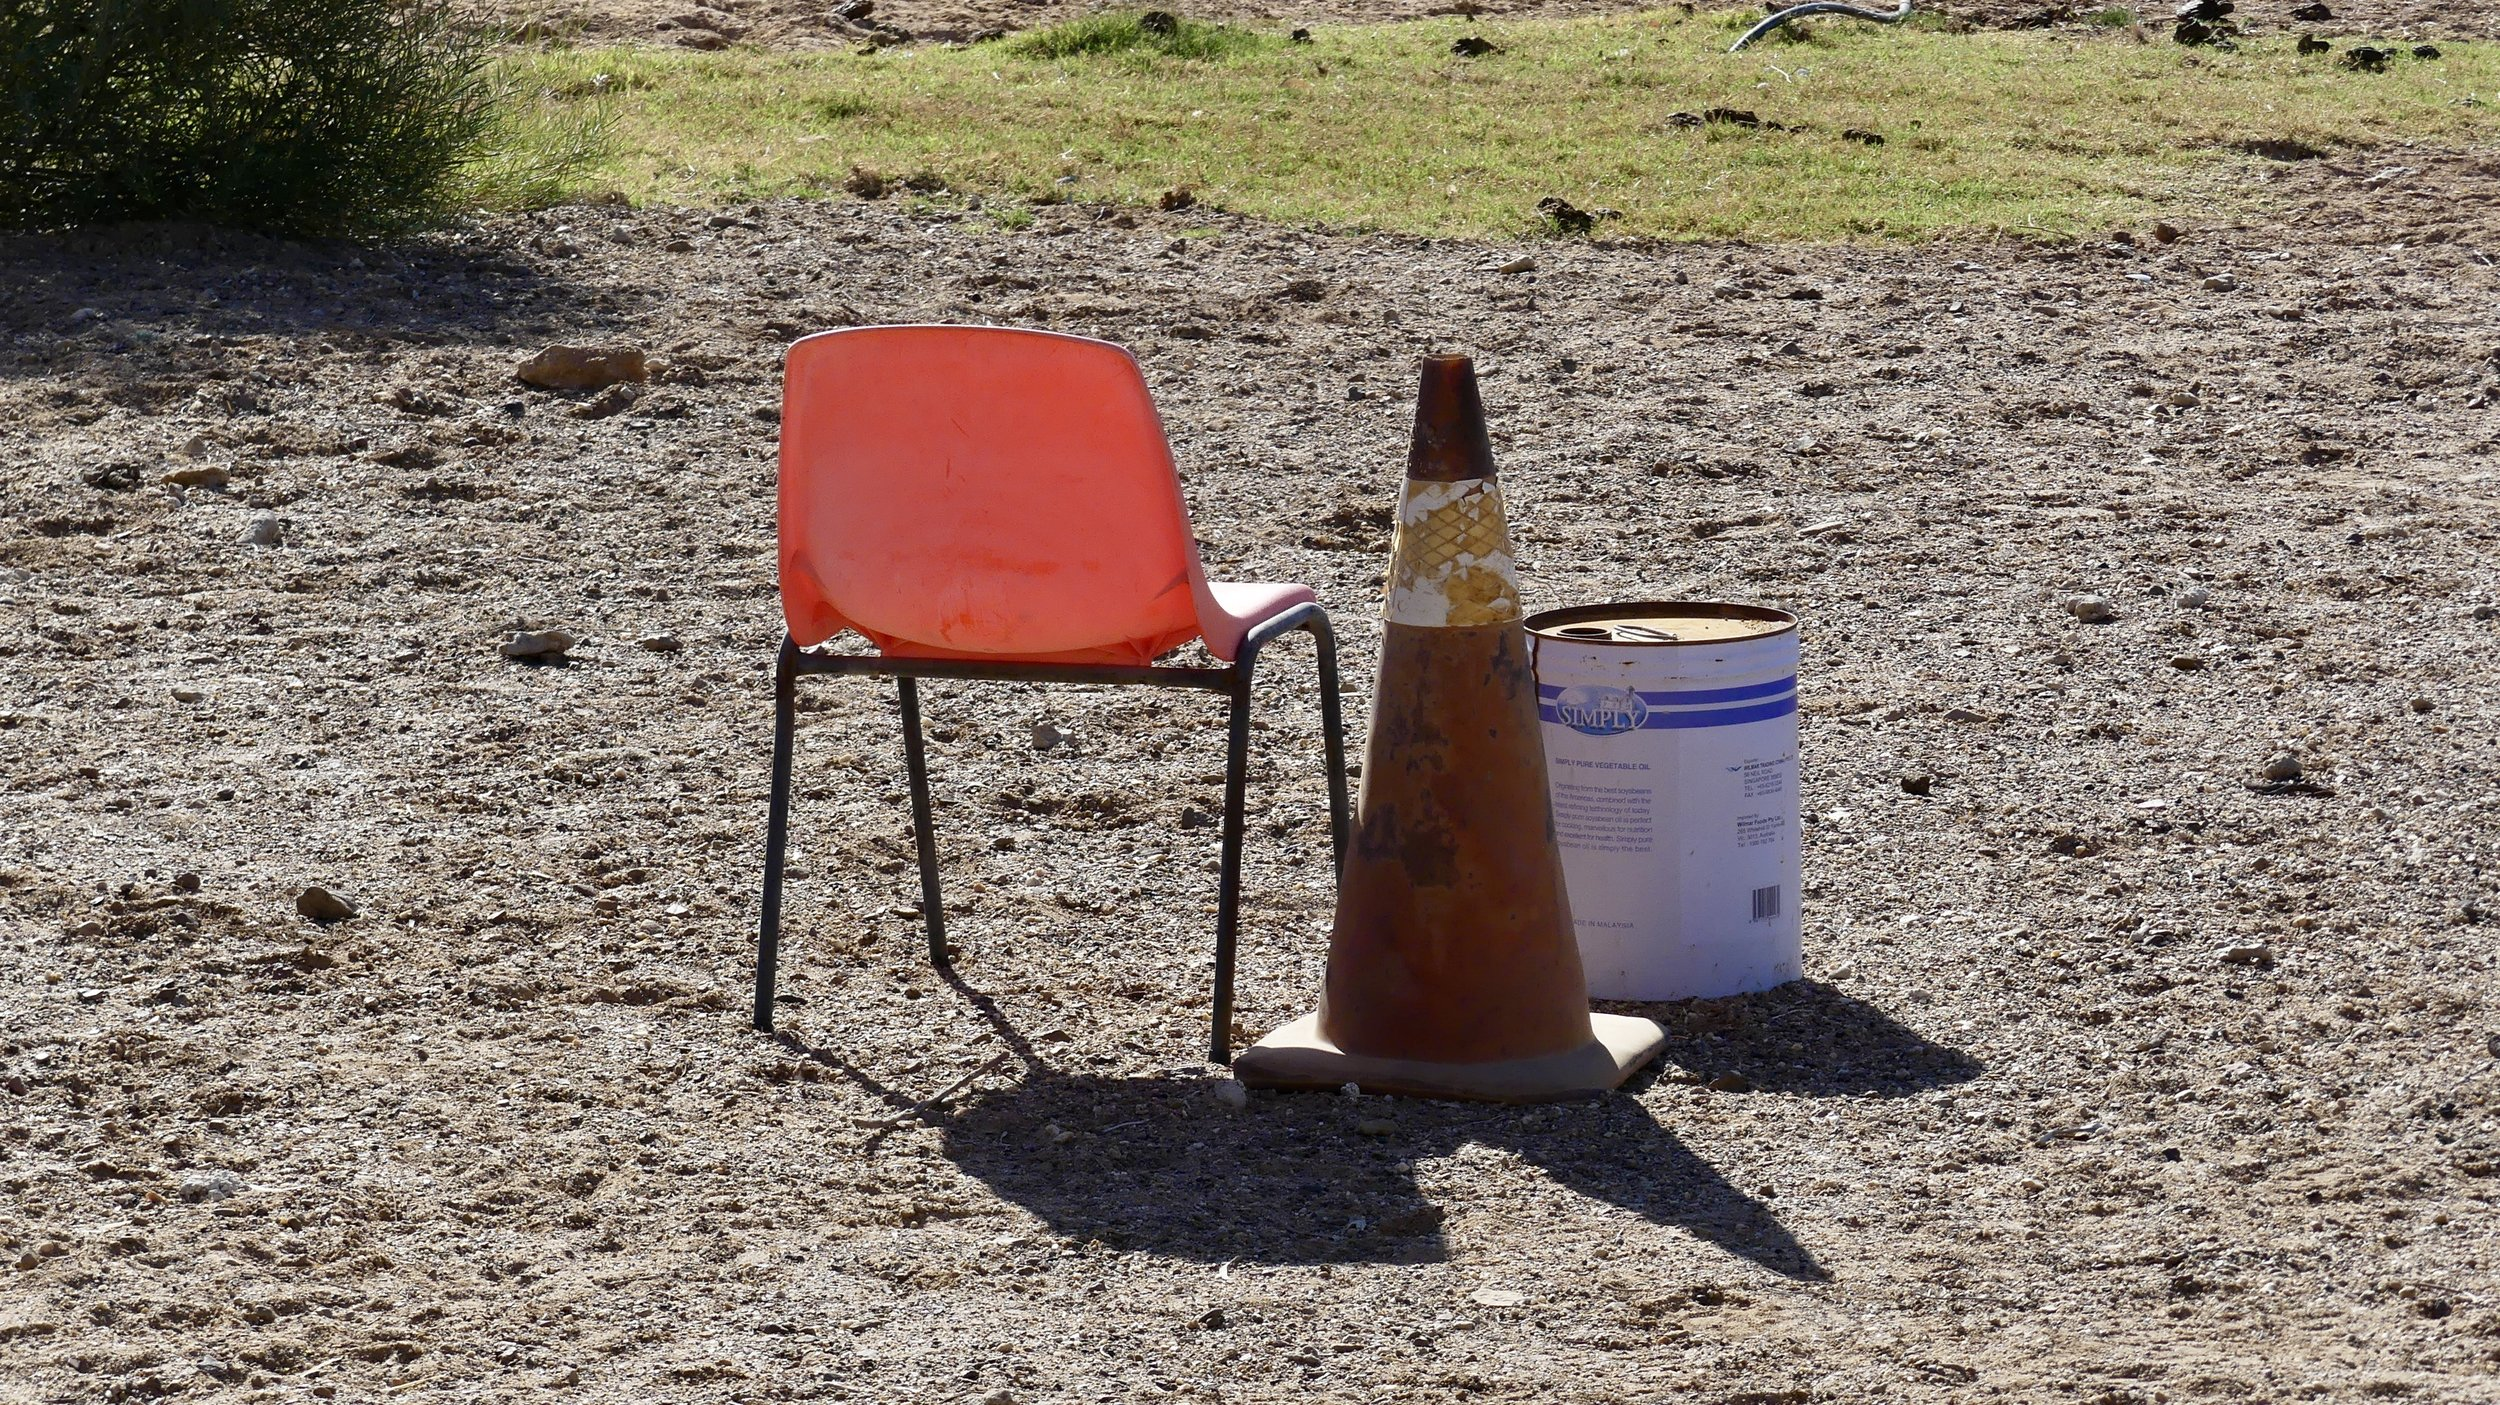 Still life: table, chair, traffic cone